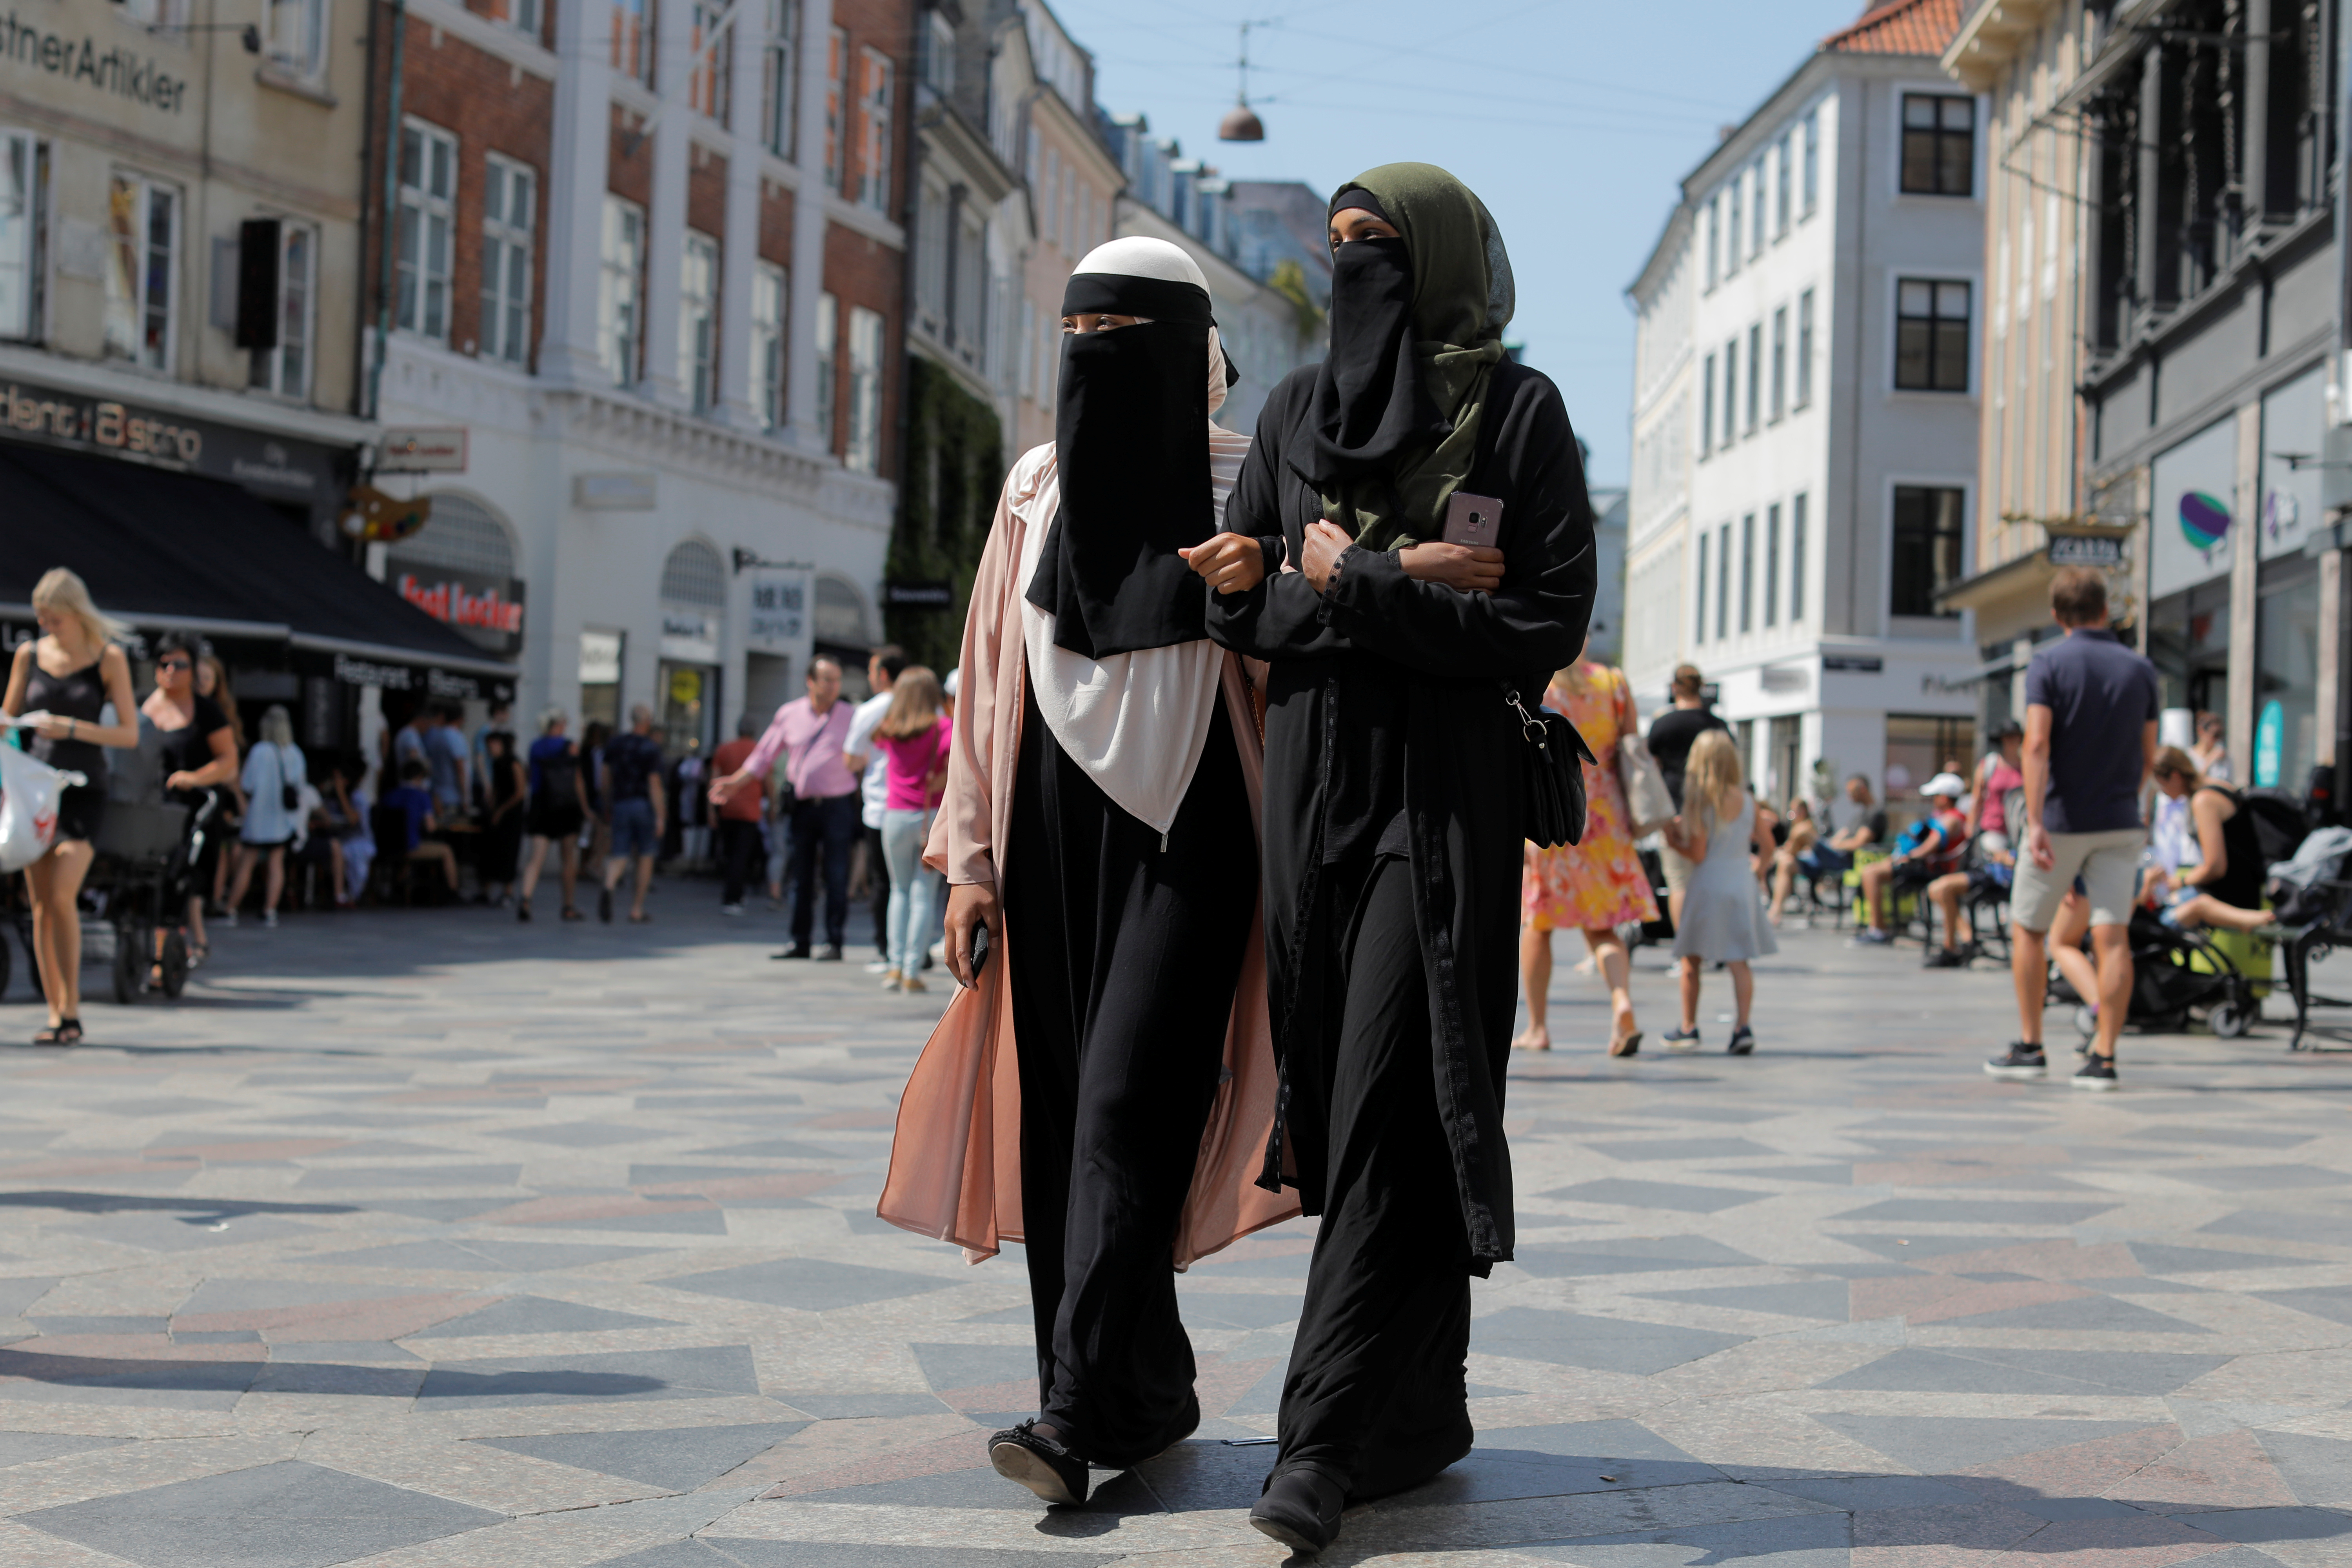 Anna-Bella (L), 26, a home care worker and Amina, 24, a student, both members of the group Kvinder I Dialog (Women in Dialogue) and wearers of the niqab, walk along Stroget, the main shopping strip in Copenhagen, Denmark, July 26, 2018.